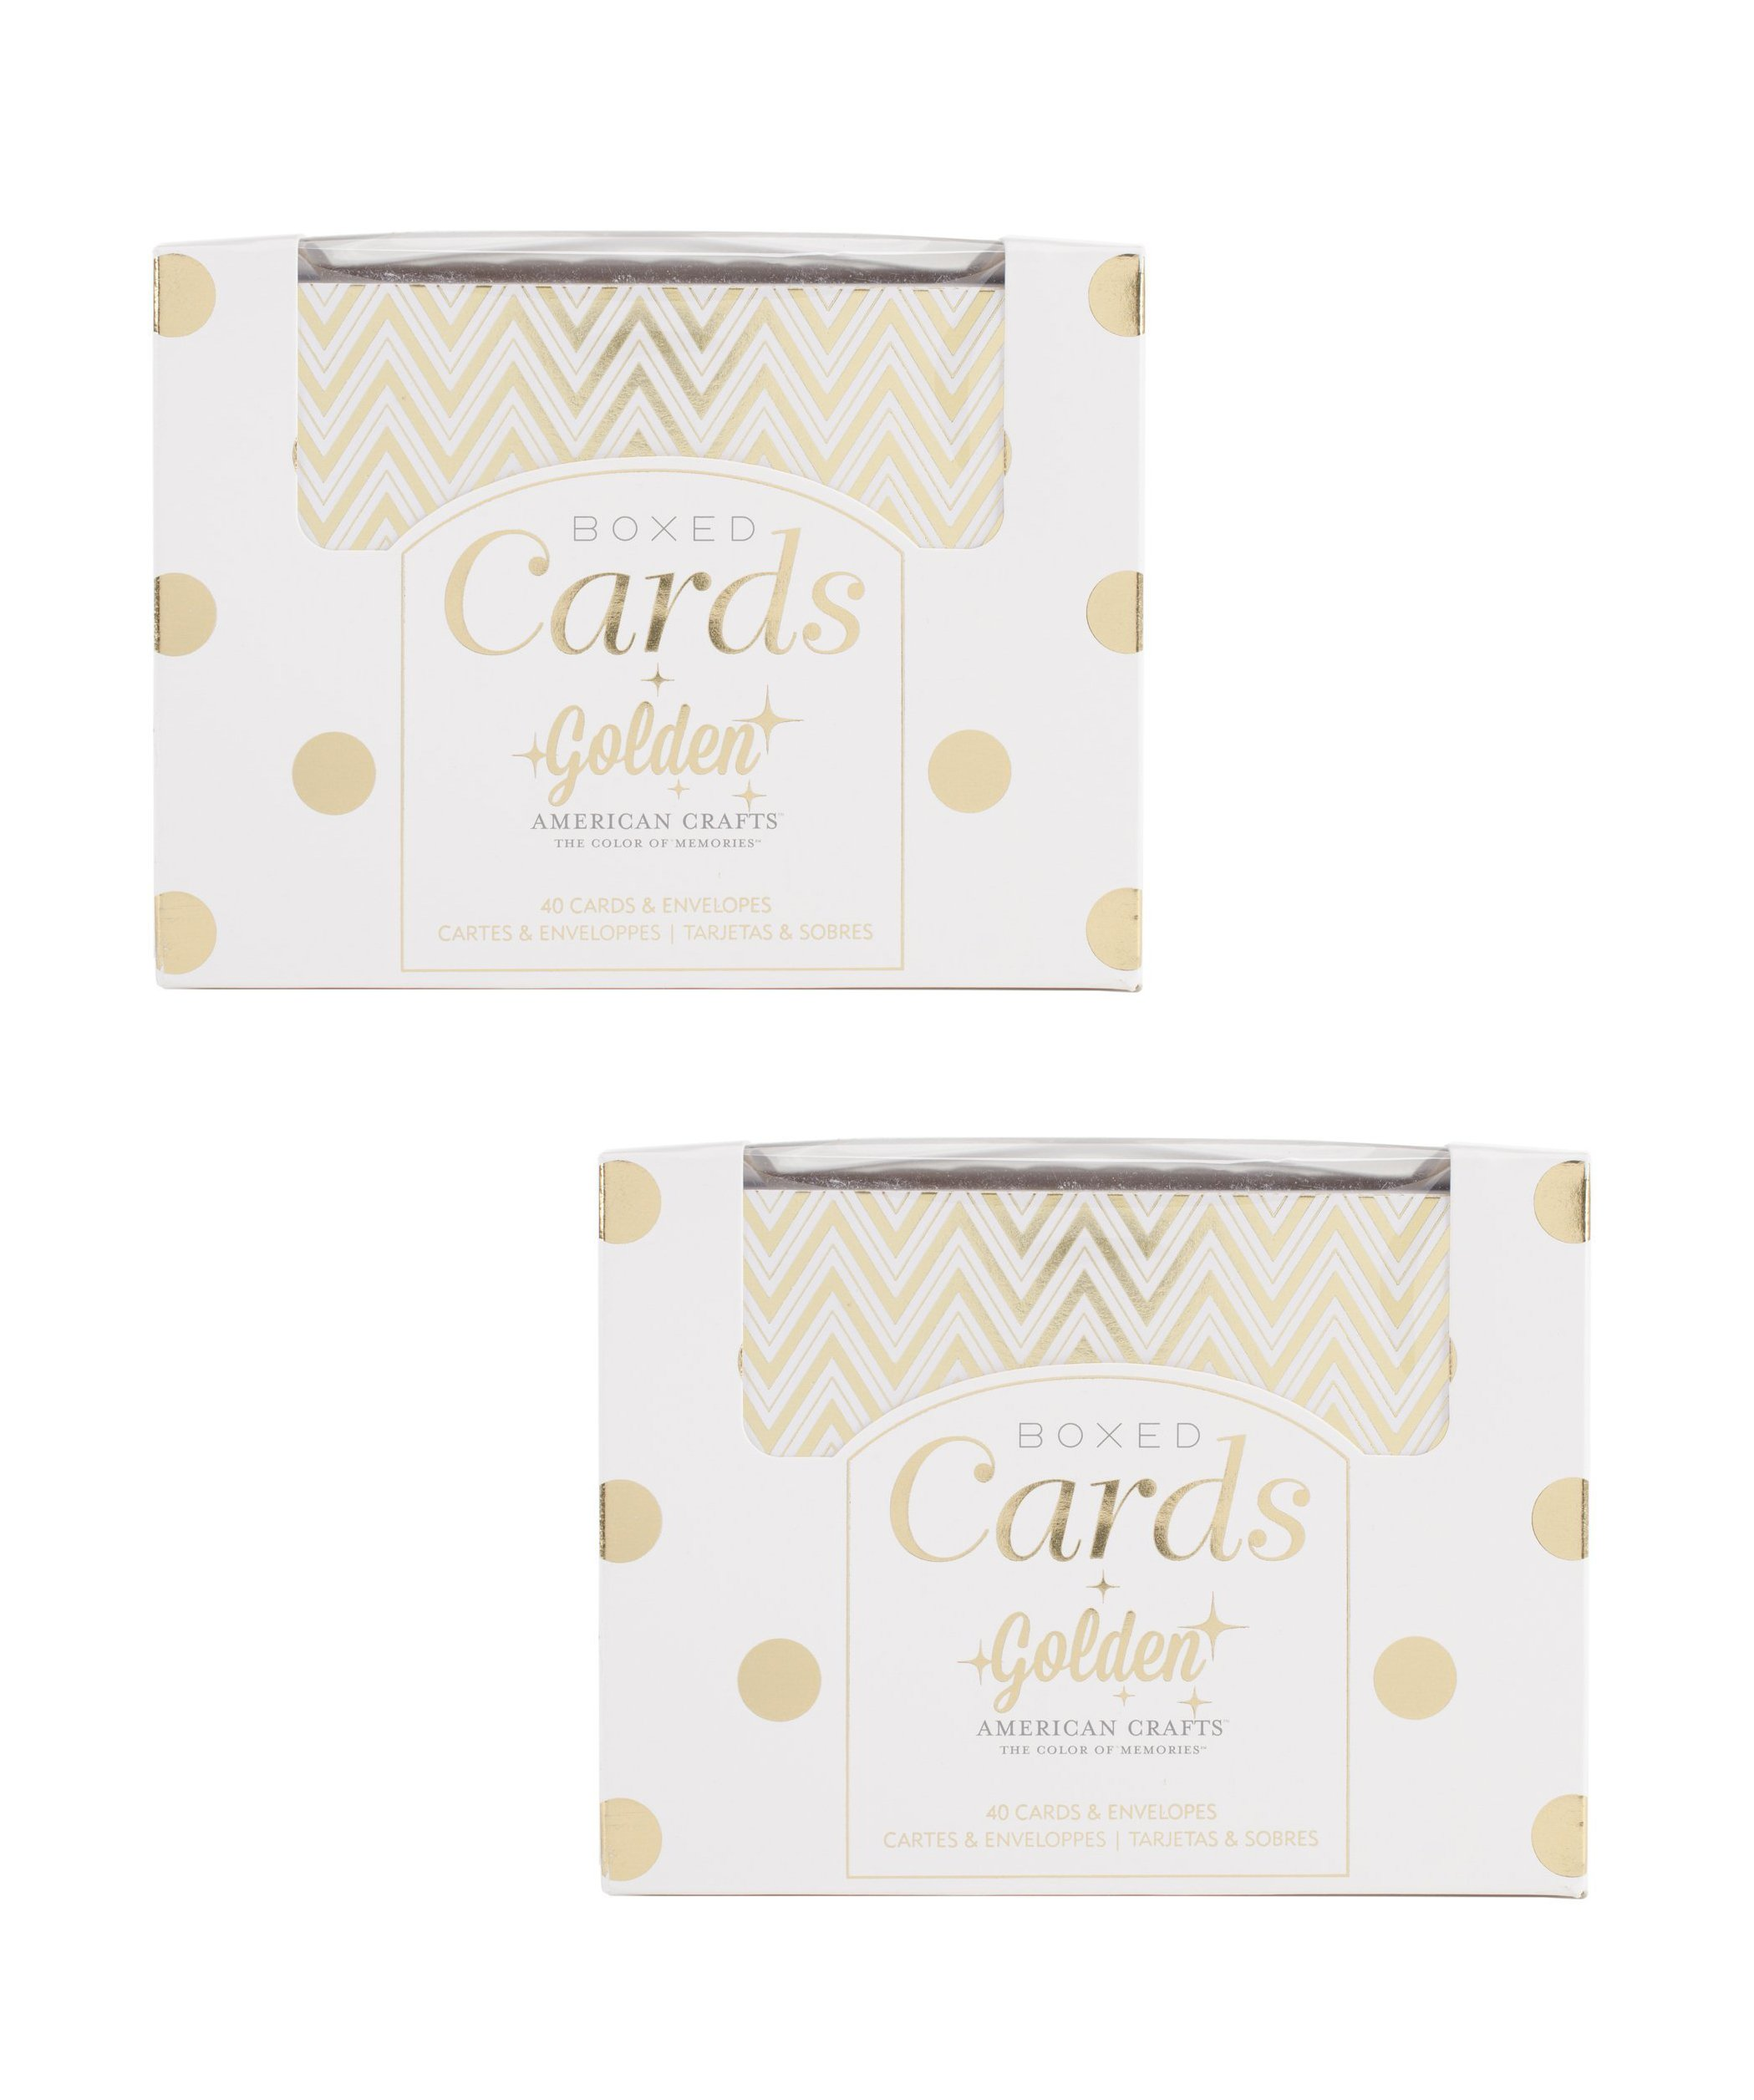 "A2 Card & Envelope Golden Box Set (4.24""X5.5"") with Shiny Gold Foil Treatments by American Crafts, 40 Cards And Envelopes Per Box. Perfect for Everyday, Holiday, Special Occasion Card Giving (2 Pack)"